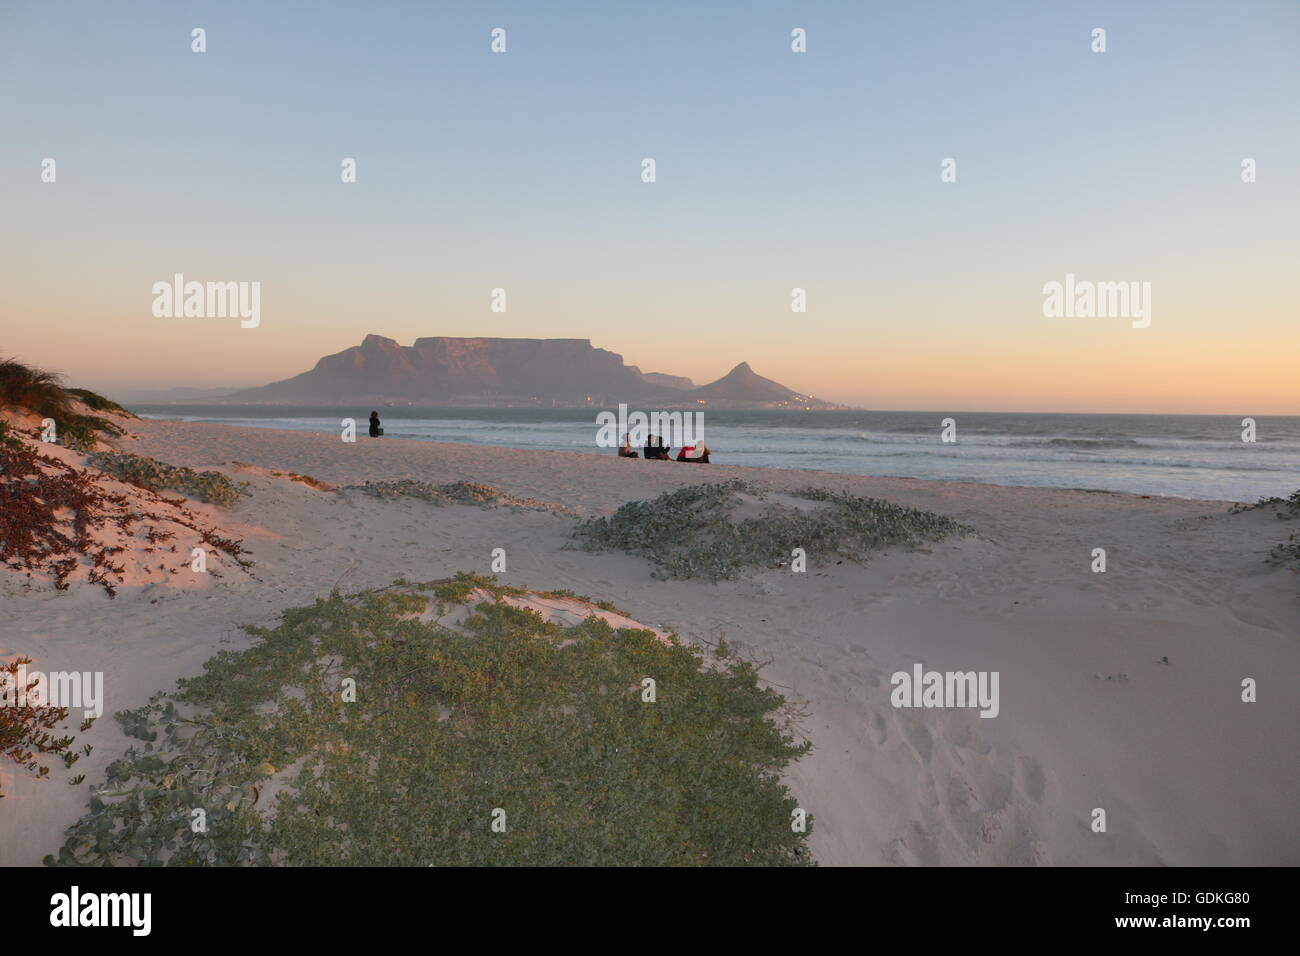 sunset over table mountain cape town south africa - Stock Image